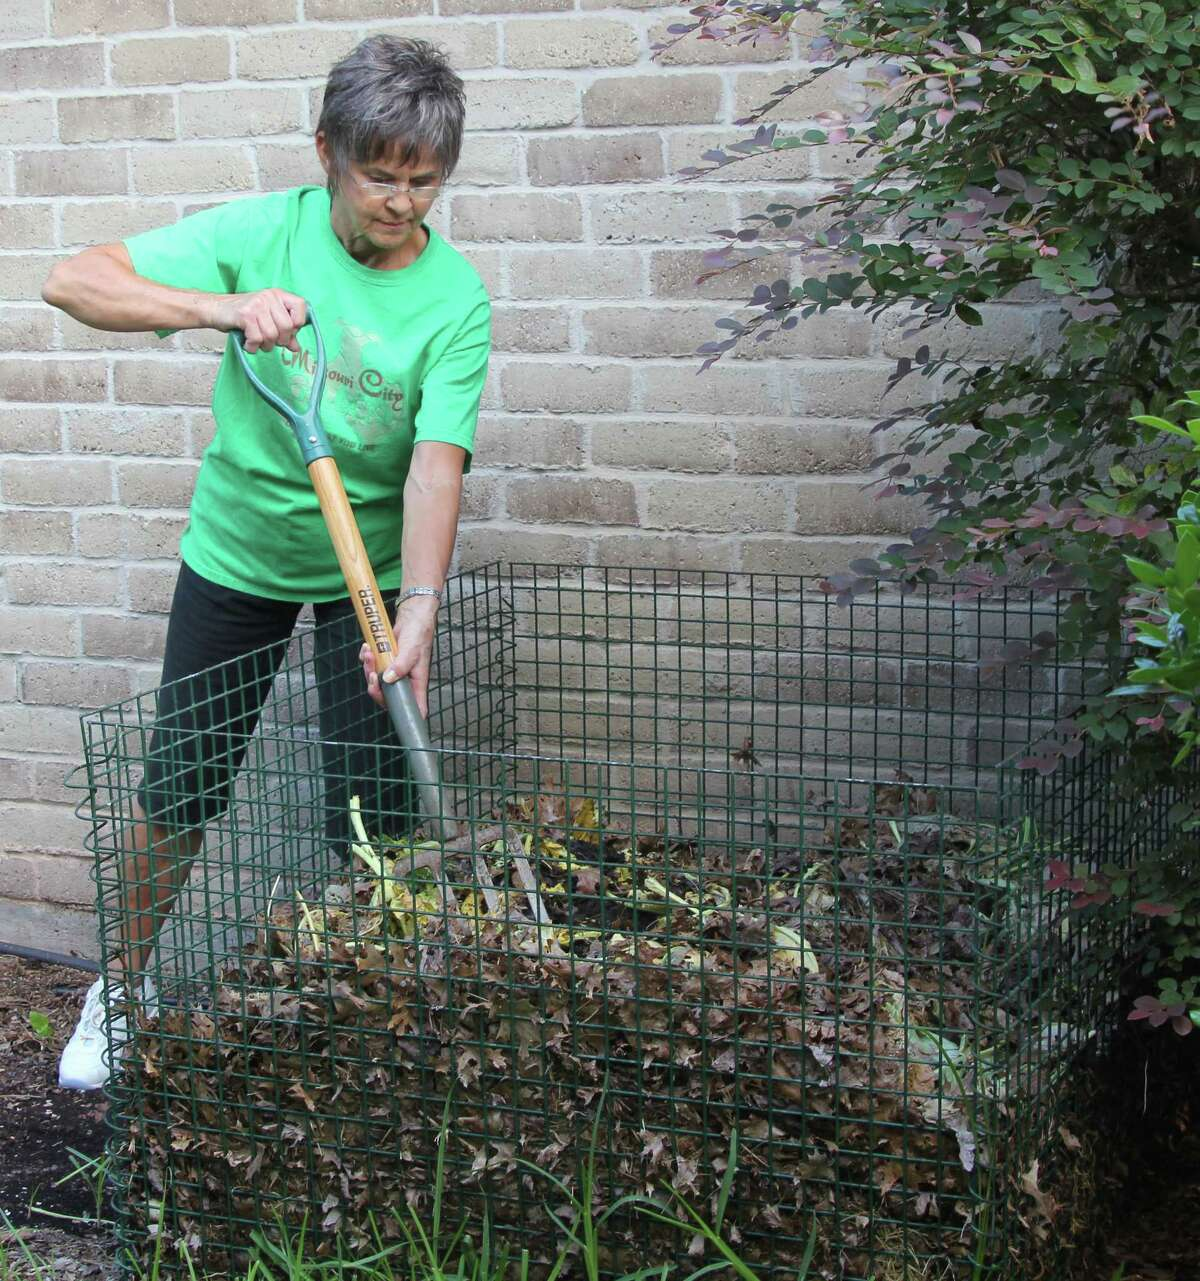 Learn how to transform your yard trimmings, grass clippings and leaves into fertile compost that will help enrich your garden at the Backyard Composting Workshop hosted by Missouri City Green and led by Fort Bend Master Gardeners on Saturday, August 19 at 9-11am at the Missouri City Recreation and Tennis Center located at 2701 Cypress Point Dr. Check-in is 8:30 am and the $20 registration fee includes one FREE compost bin valued at $60. Family members accompanying a registrant may attend at no cost.For more information and to register online, visit www.missouricitygreen.org. Email questions to info@missouricitygreen.org.